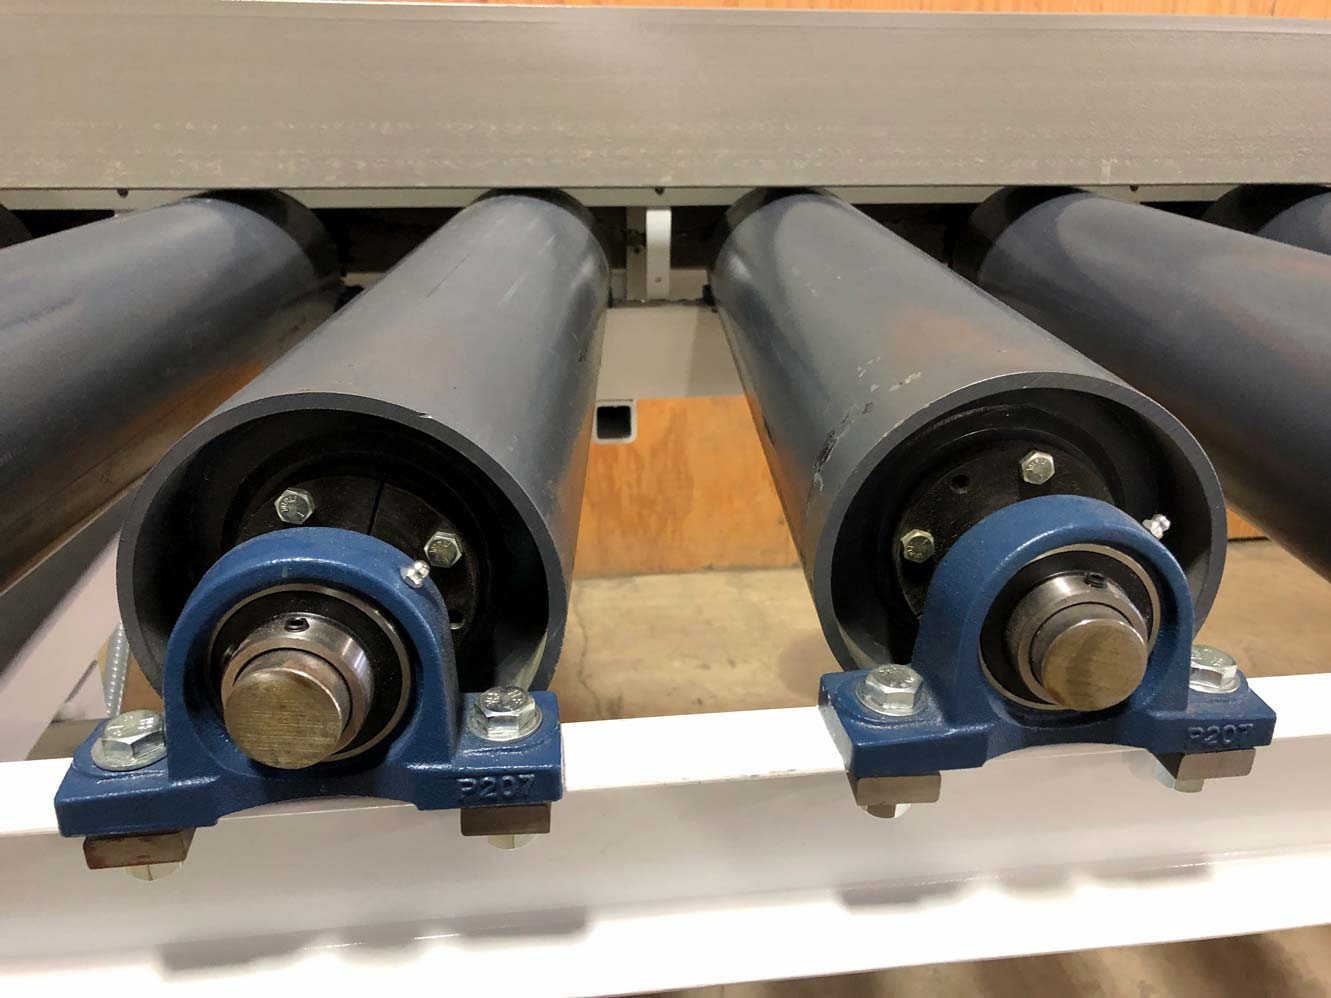 Smith Machine Worx - Rollers on a conveyor